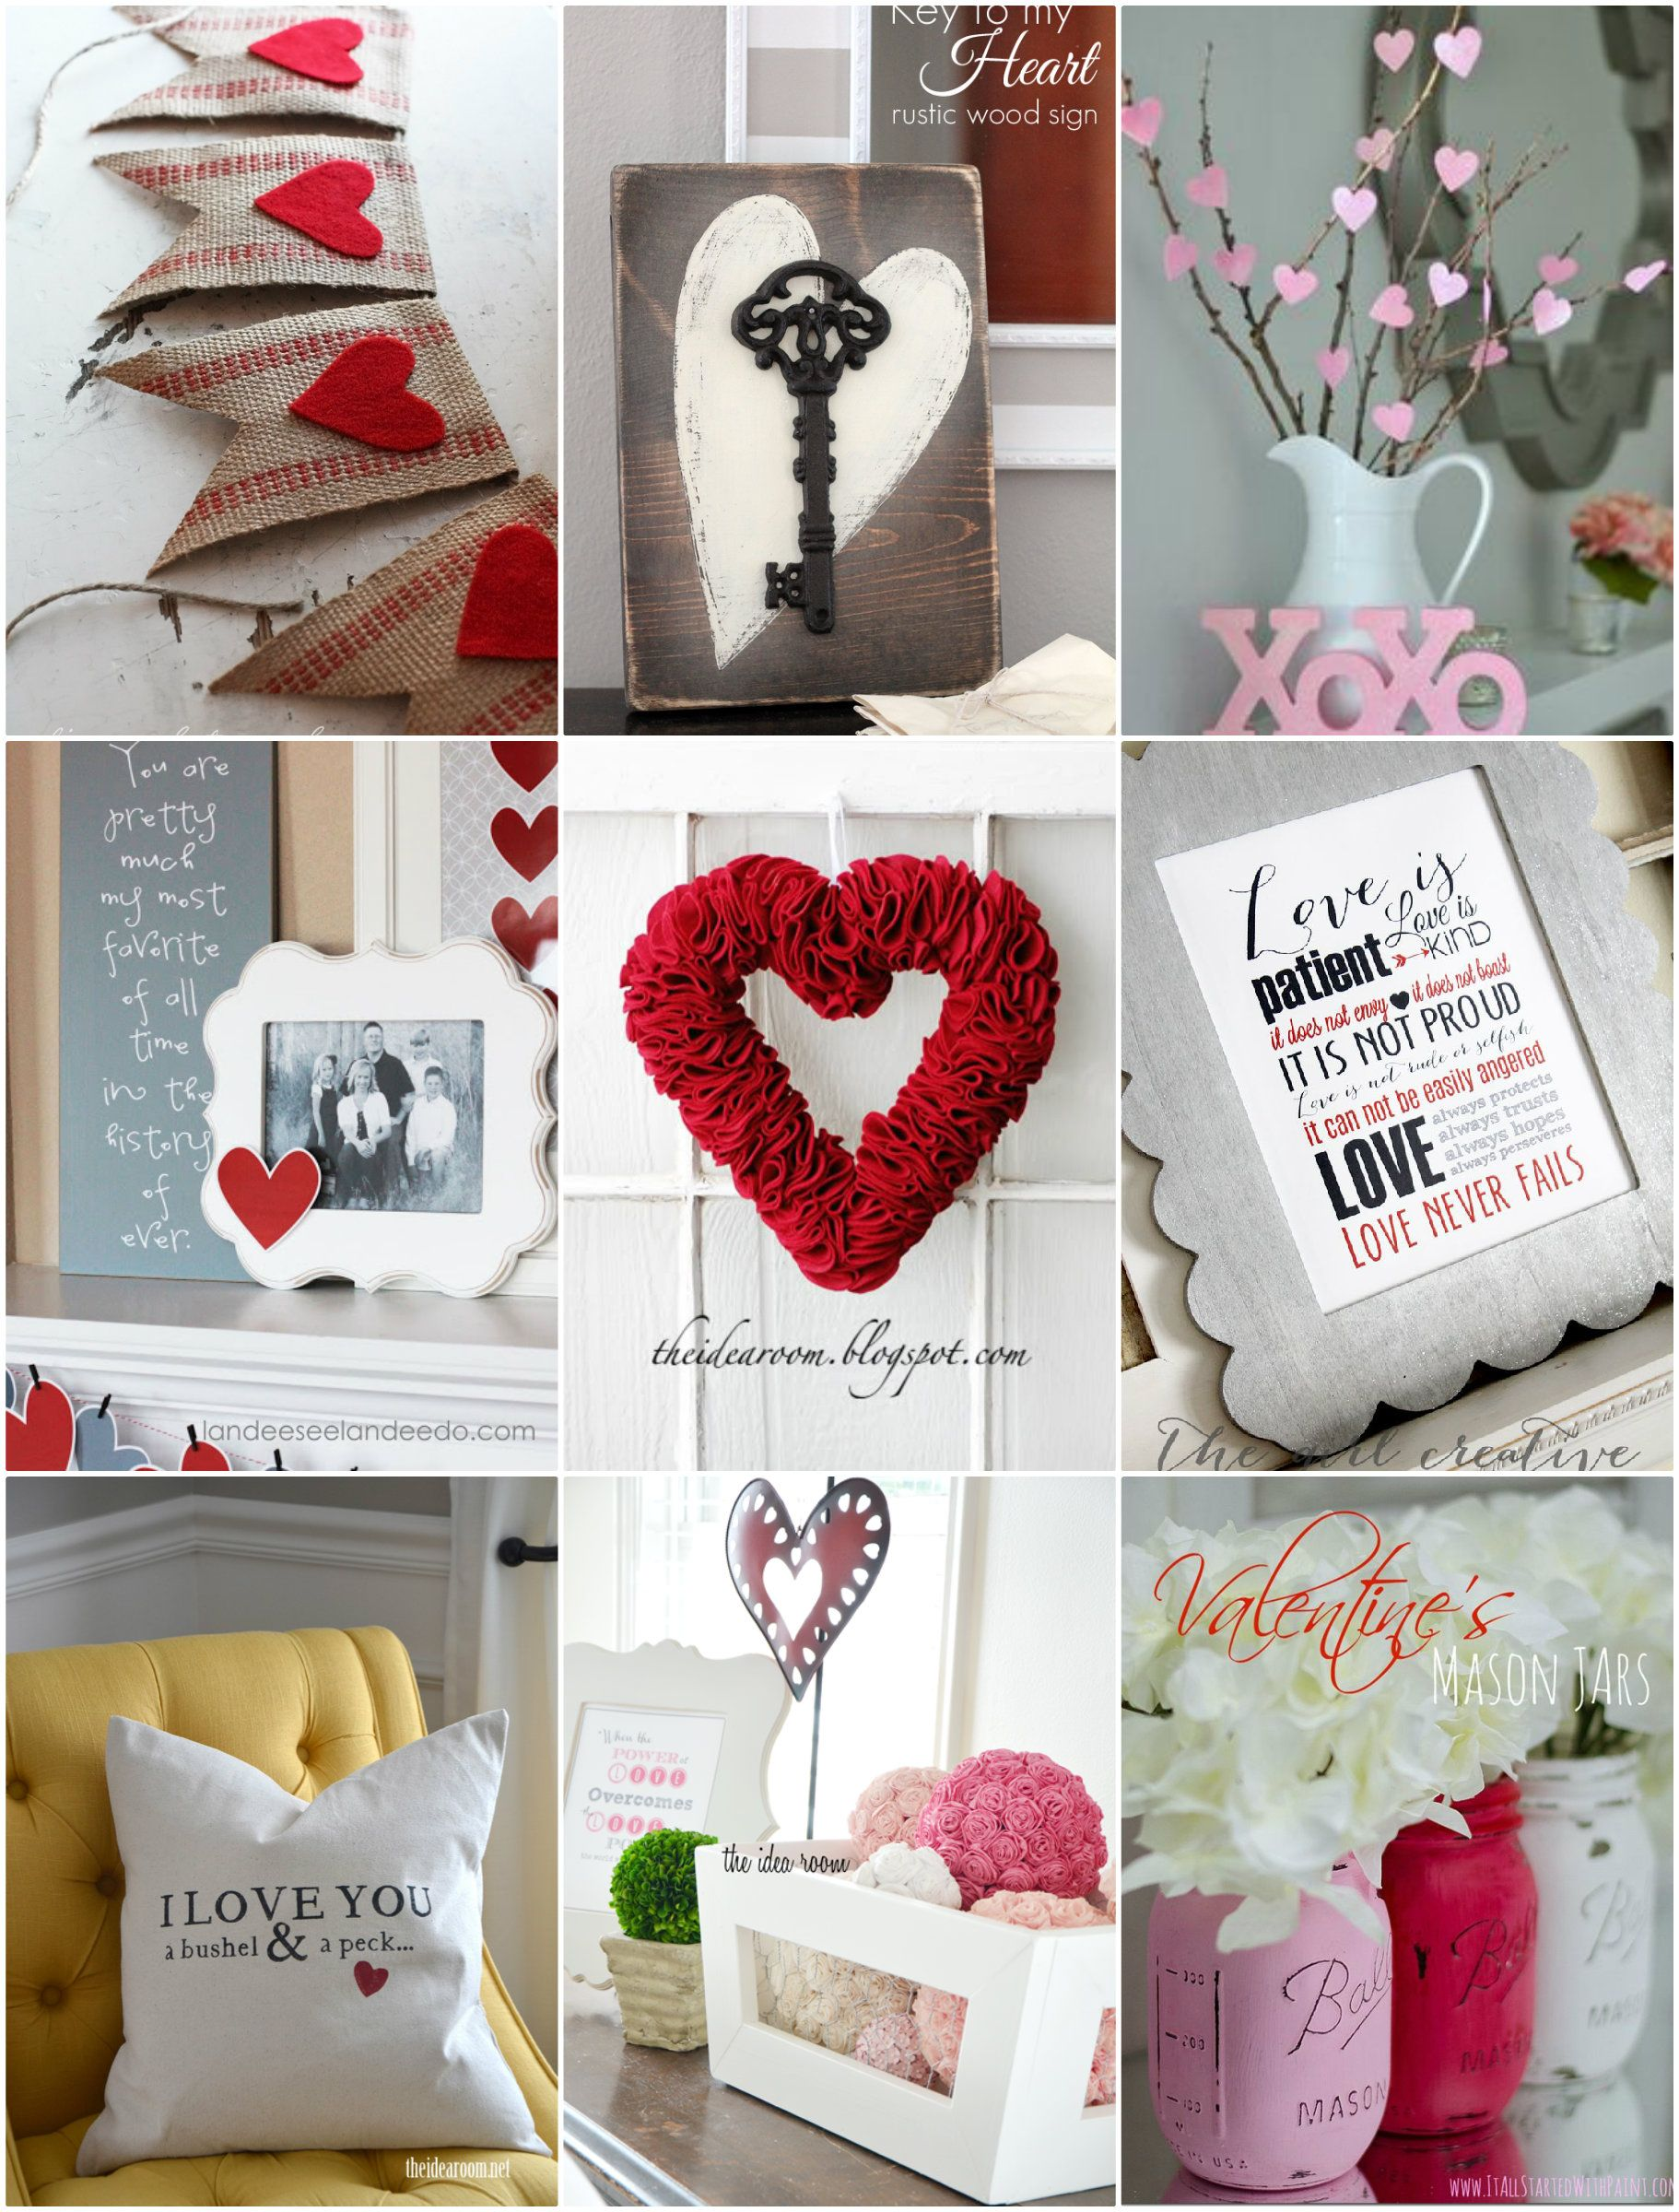 Looking For Some Fun New Valentine S Day Decor Ideas For Your Home Or Valentine S Day Party